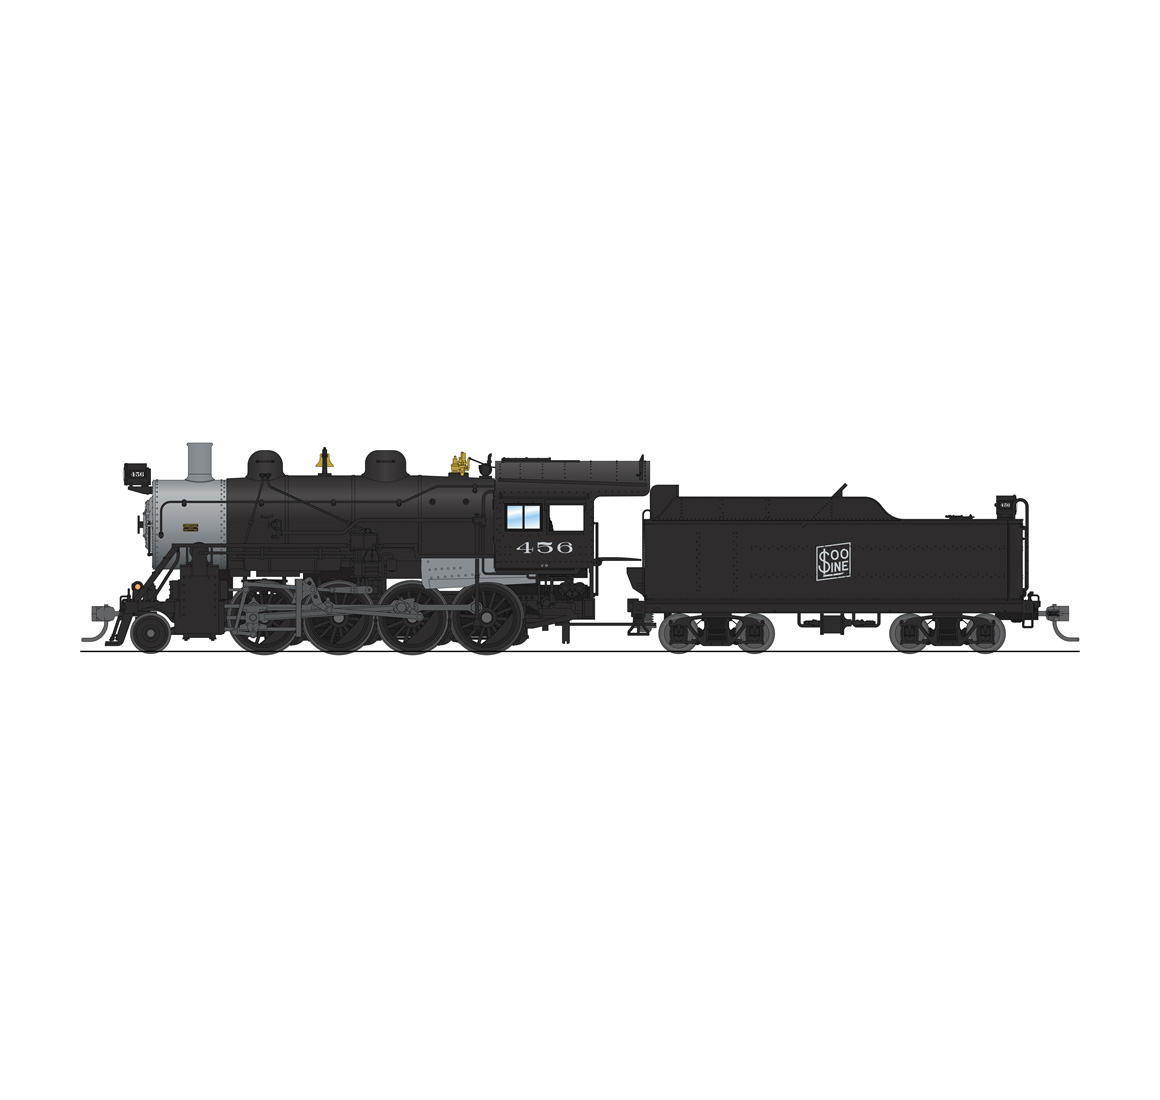 broadway_limited_2-8-0_consolidation_soo_456